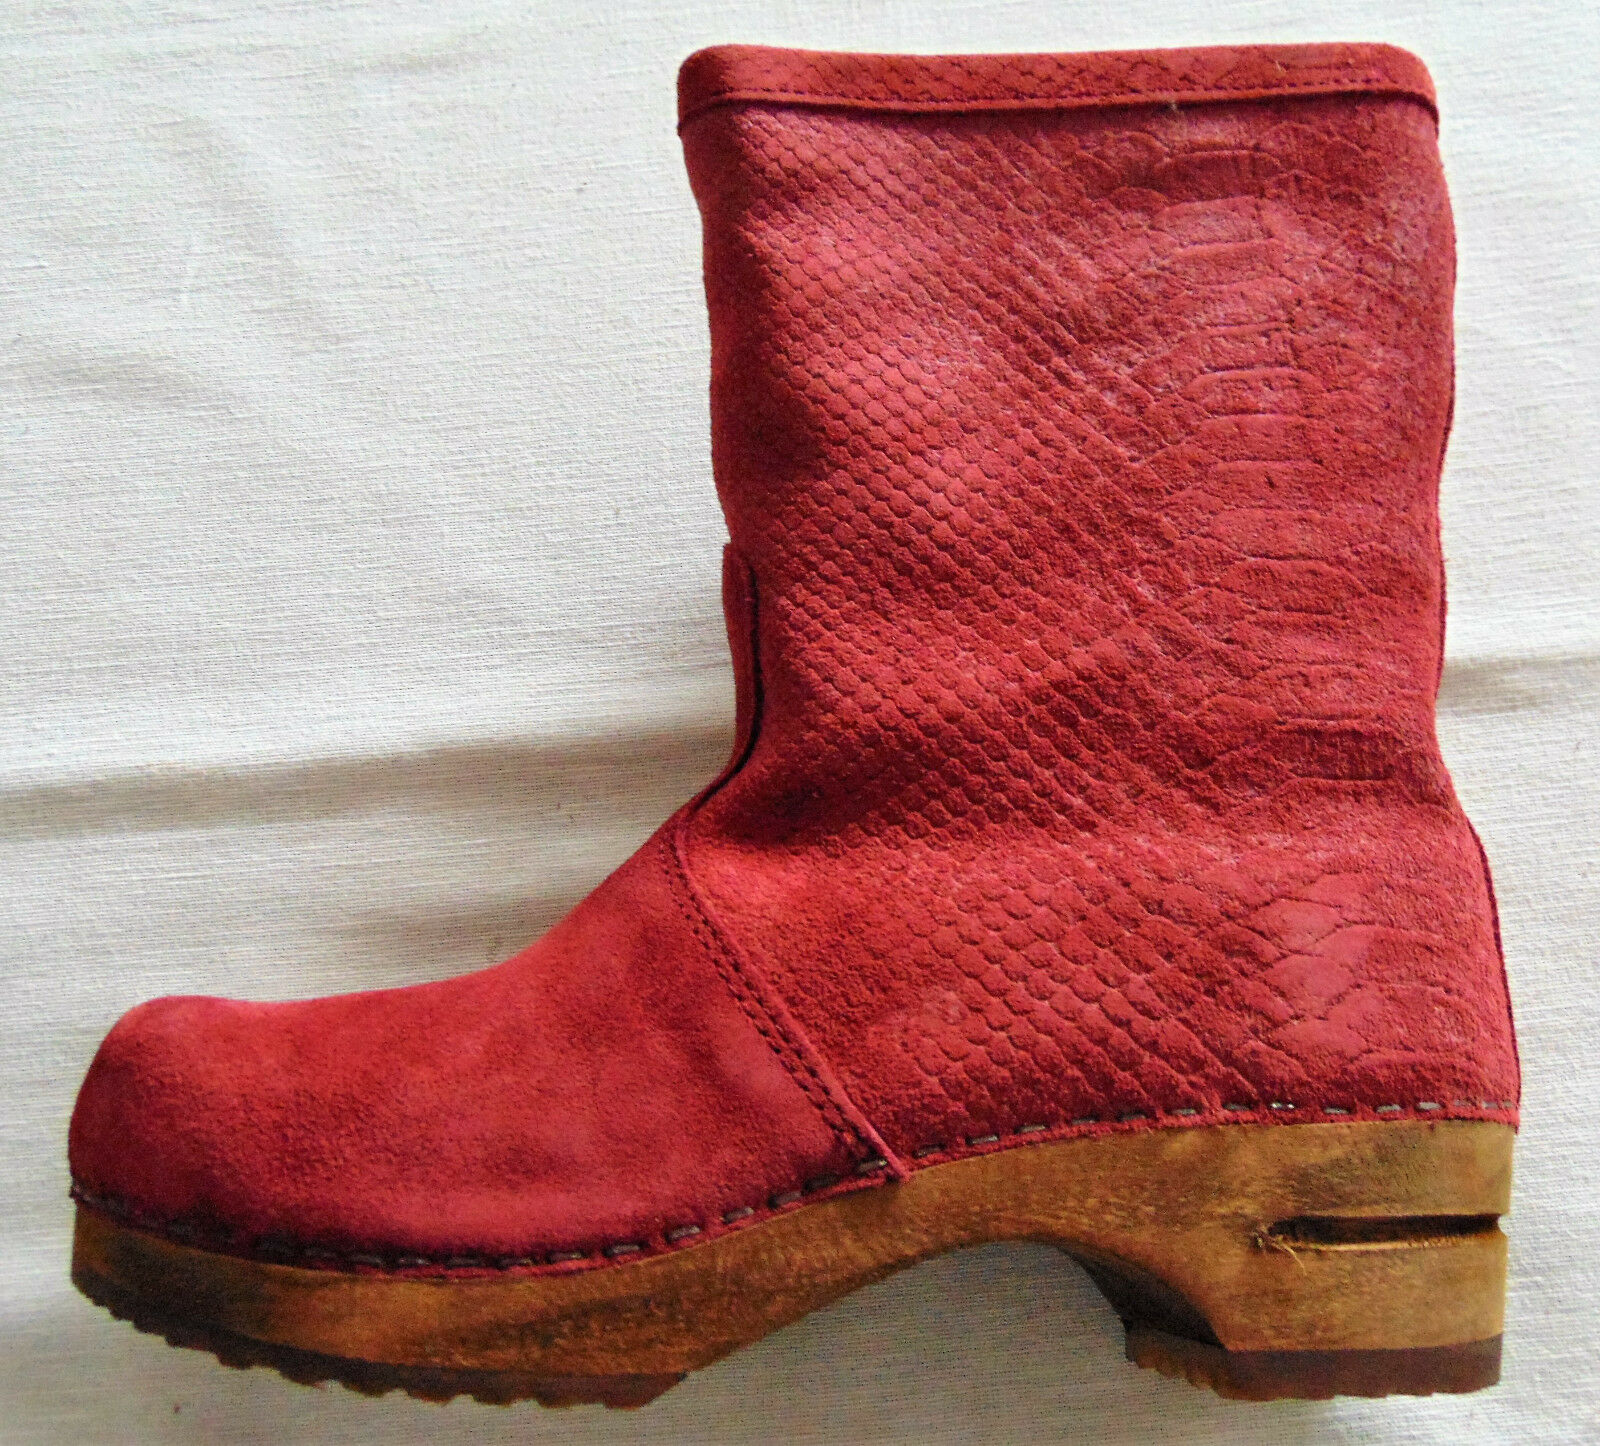 SANITA - - Nelly Clogs - Stiefel - - Rot - Farbe 46 - Velourleder - 8474d1